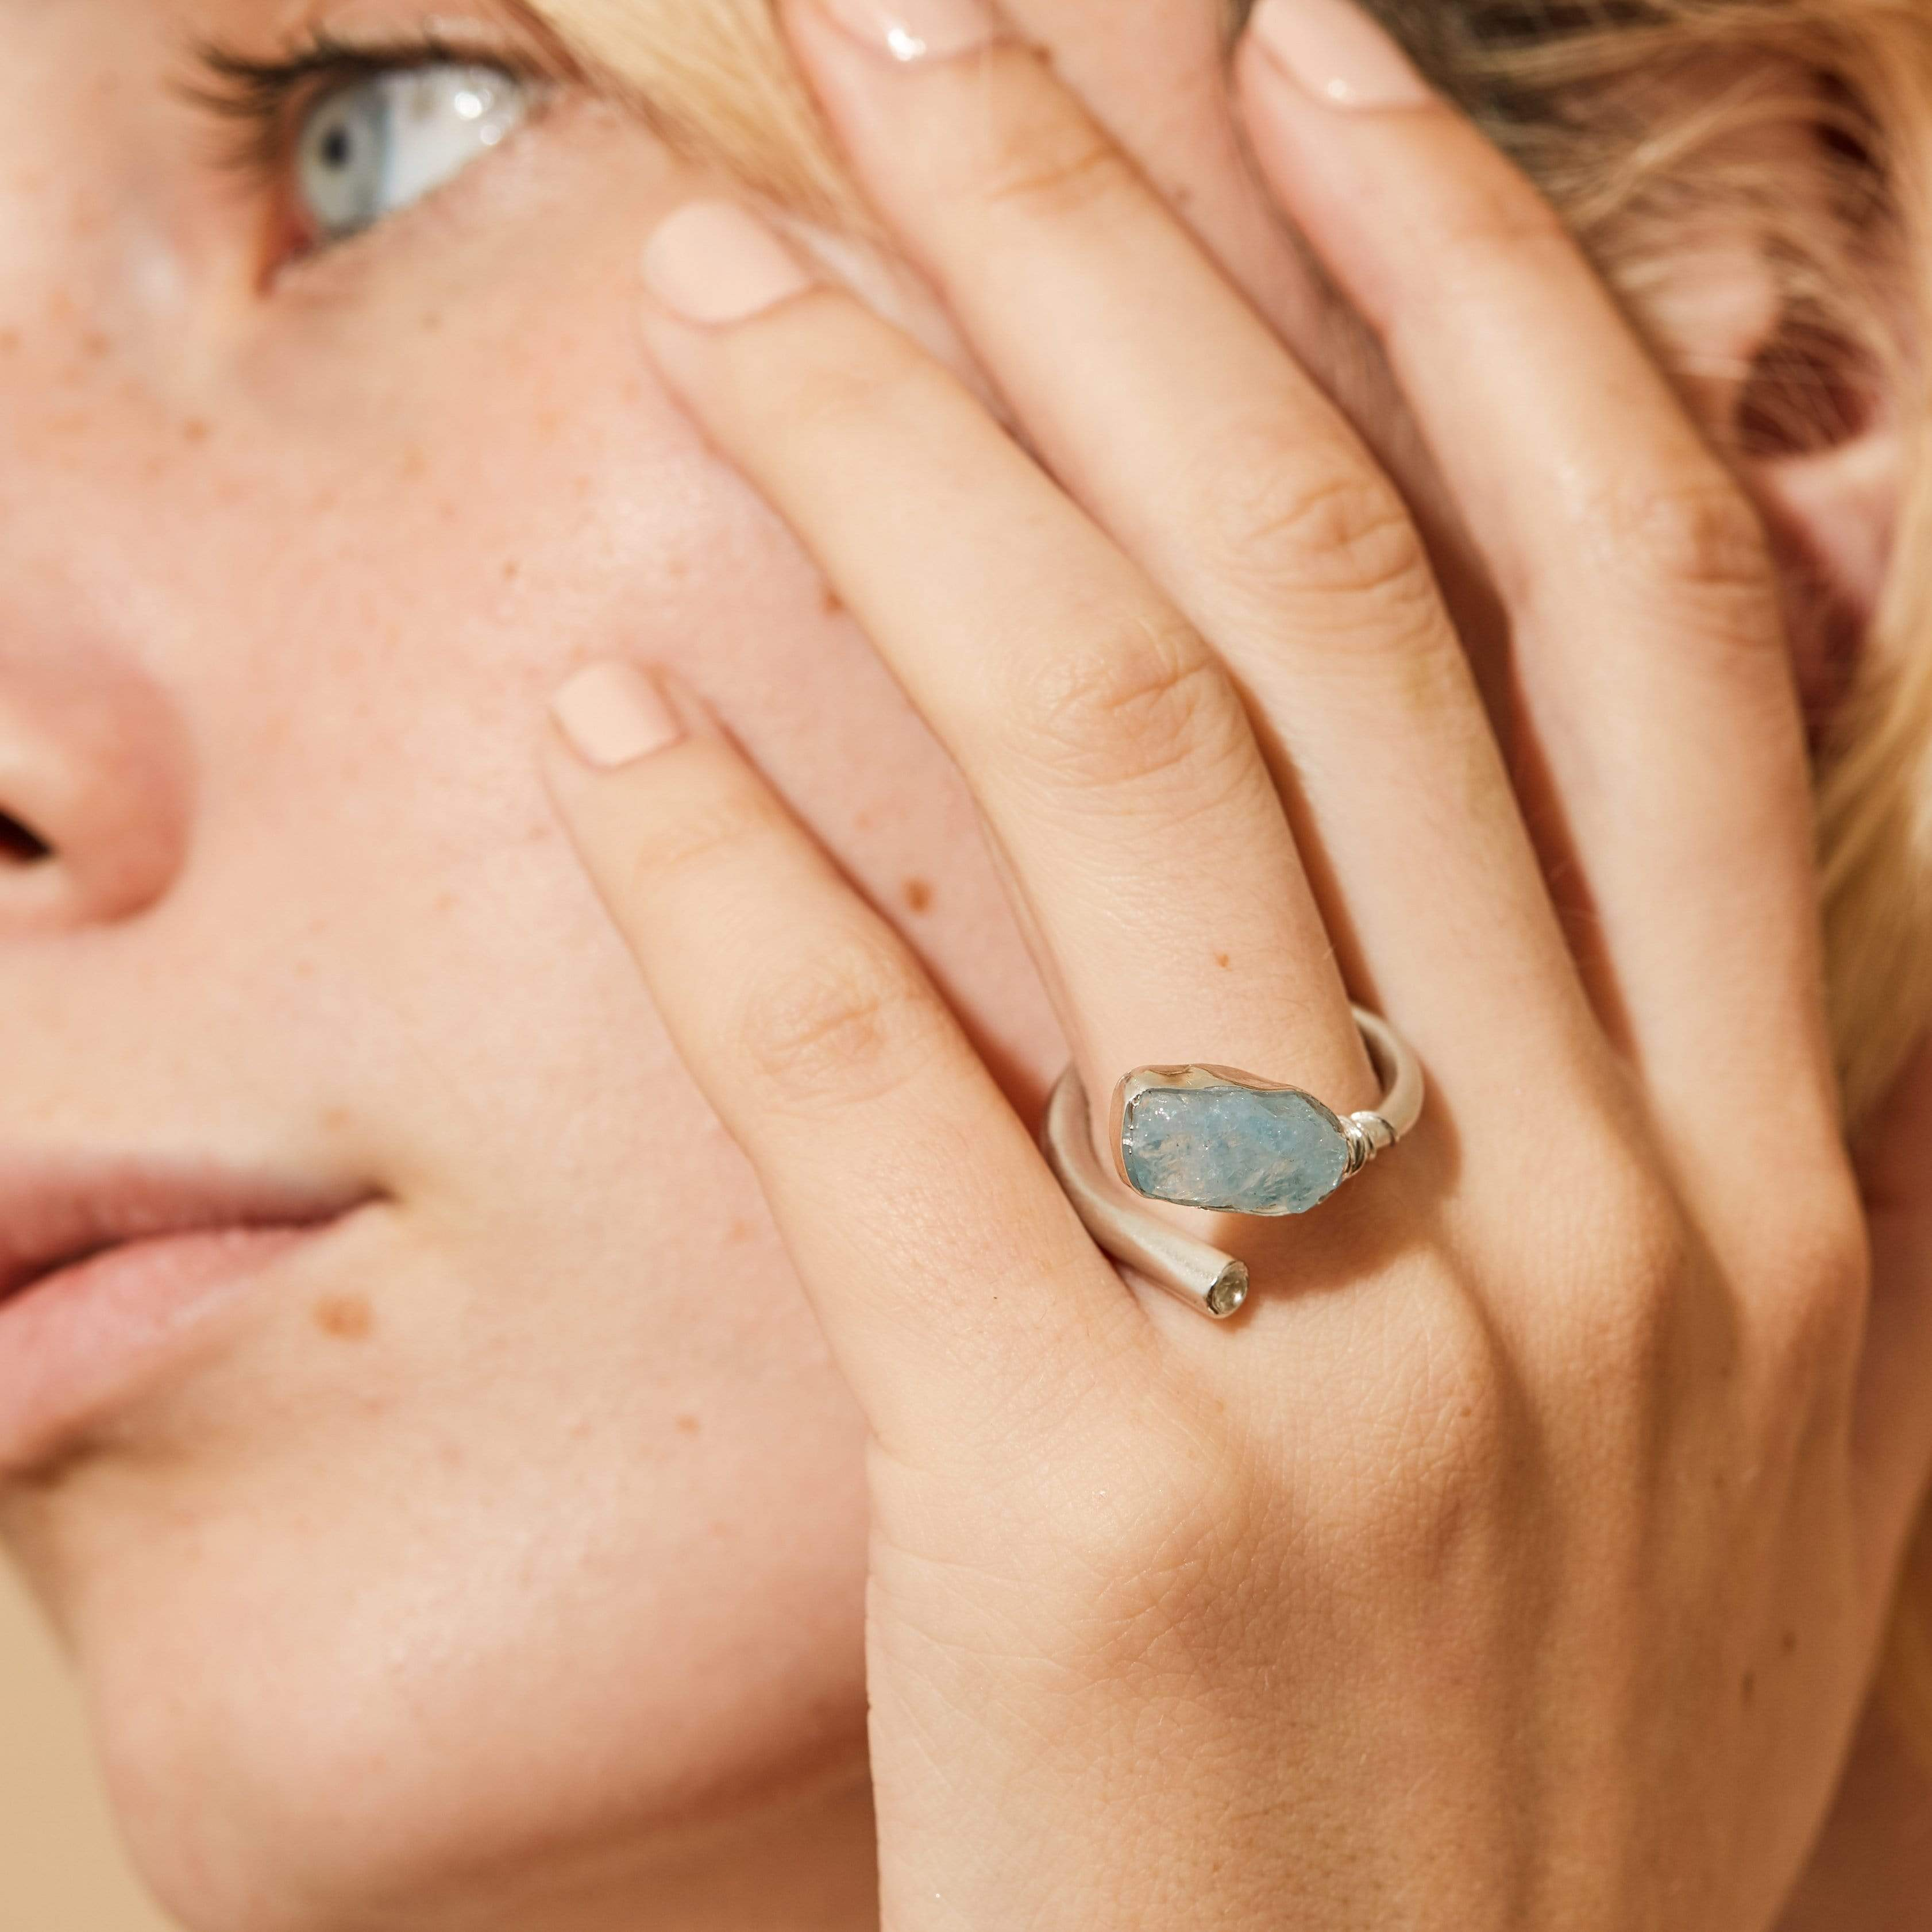 Hefina Ring, Aquamarine, Handmade, Rhodium, silver, spo-disabled, StoneColor:Blue, Style:Delicate, Topaz, Type:LargeSoloStone Ring